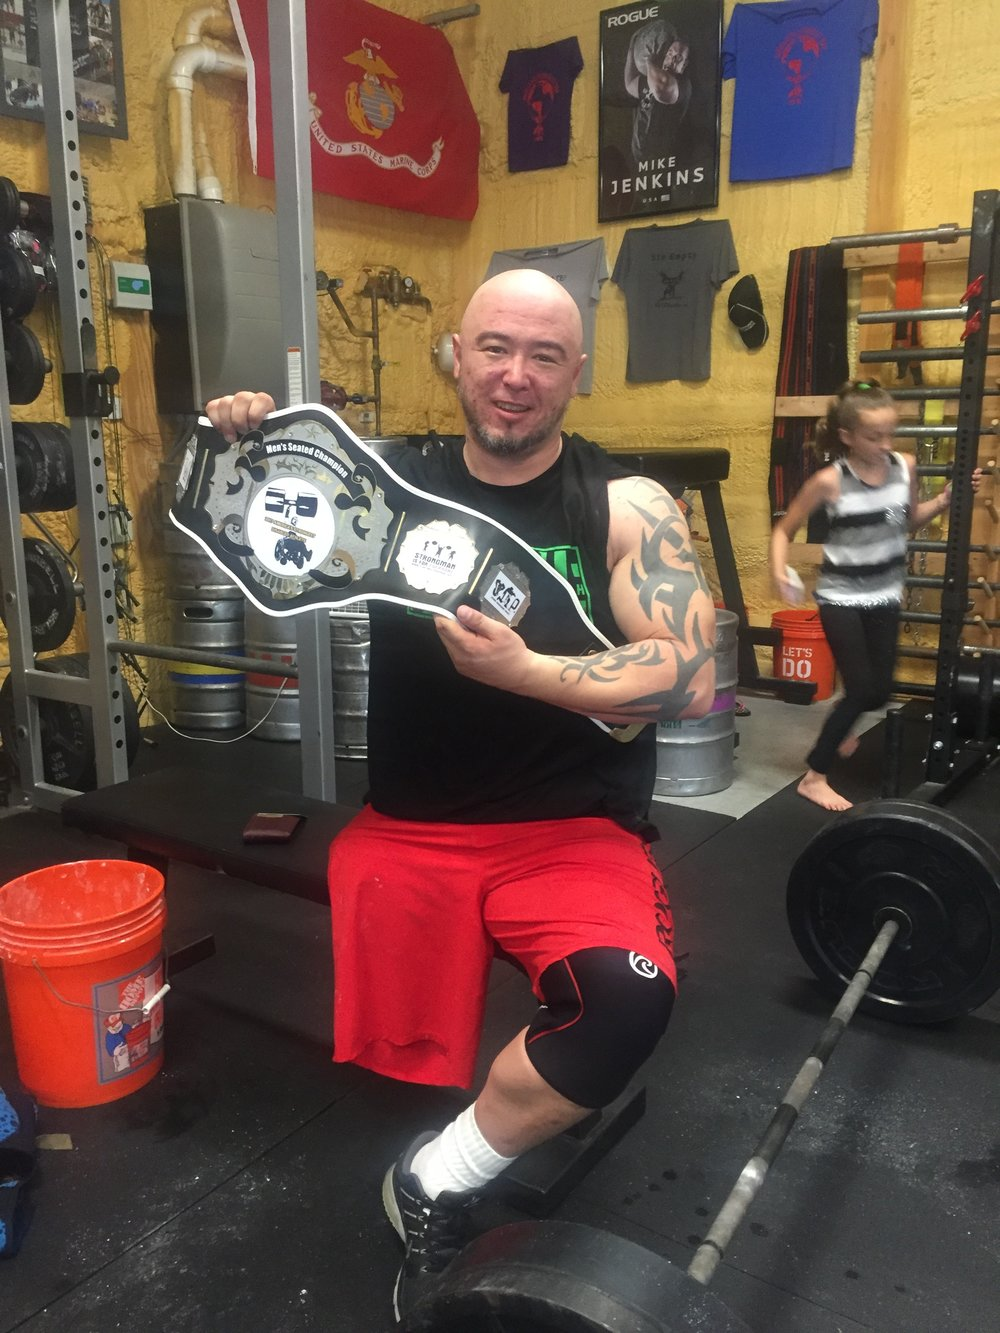 Your 2017 America's Strongest Adaptive Athlete, Tommy Ahn. I cannot tell you how proud of you I am brother! The Nicest, Strongest Man Around!